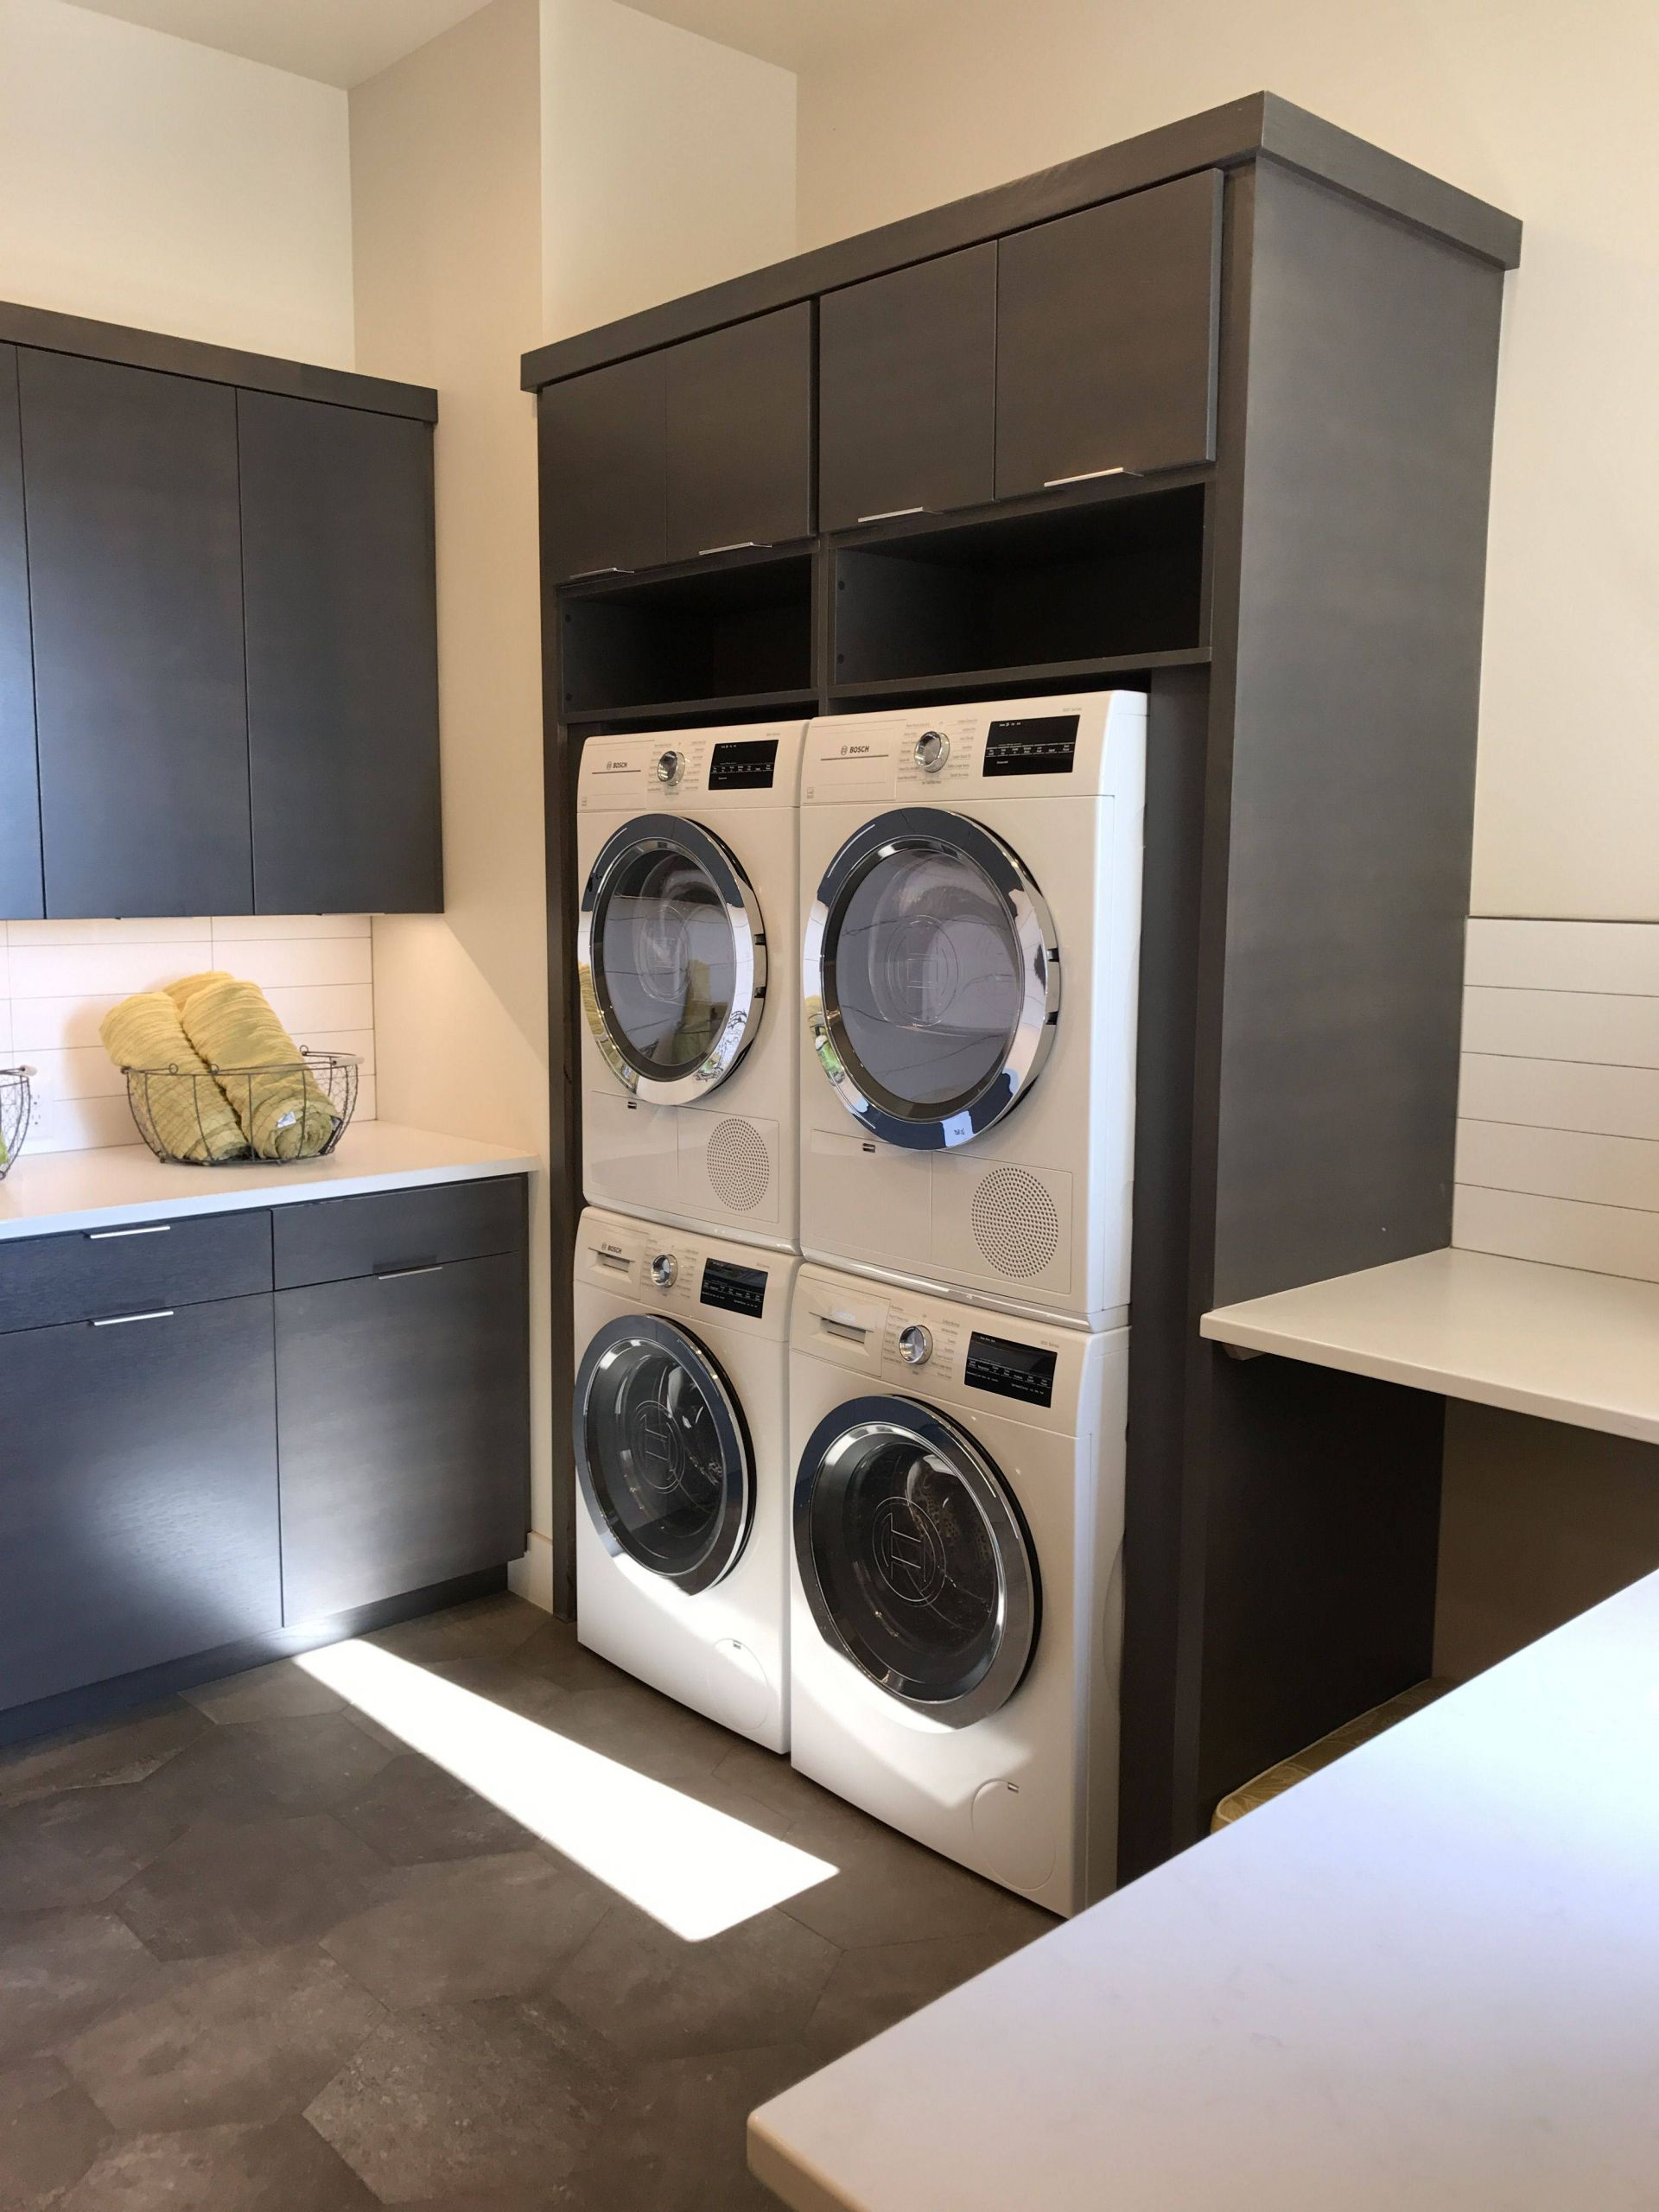 Exceptional Laundry Room Ideas Lovely Double Stacking Washers Would Be Perfect In the Laundry Room